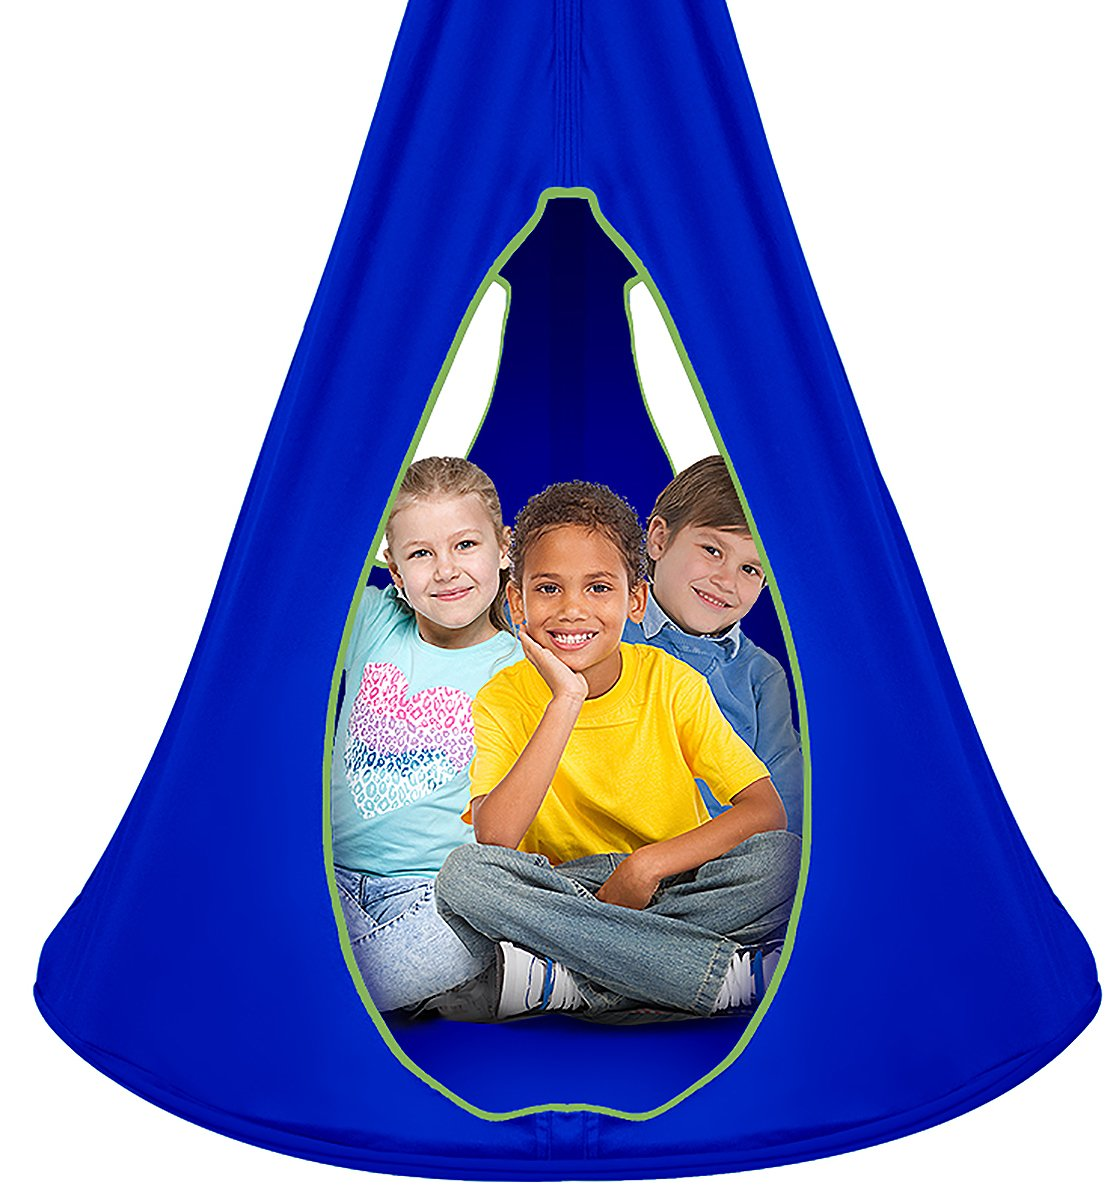 Terrific Sorbus Kids Nest Swing Chair Nook Hanging Seat Hammock For Indoor Outdoor Use Great For Children All Accessories Included 40 Inch Nest Blue Pabps2019 Chair Design Images Pabps2019Com